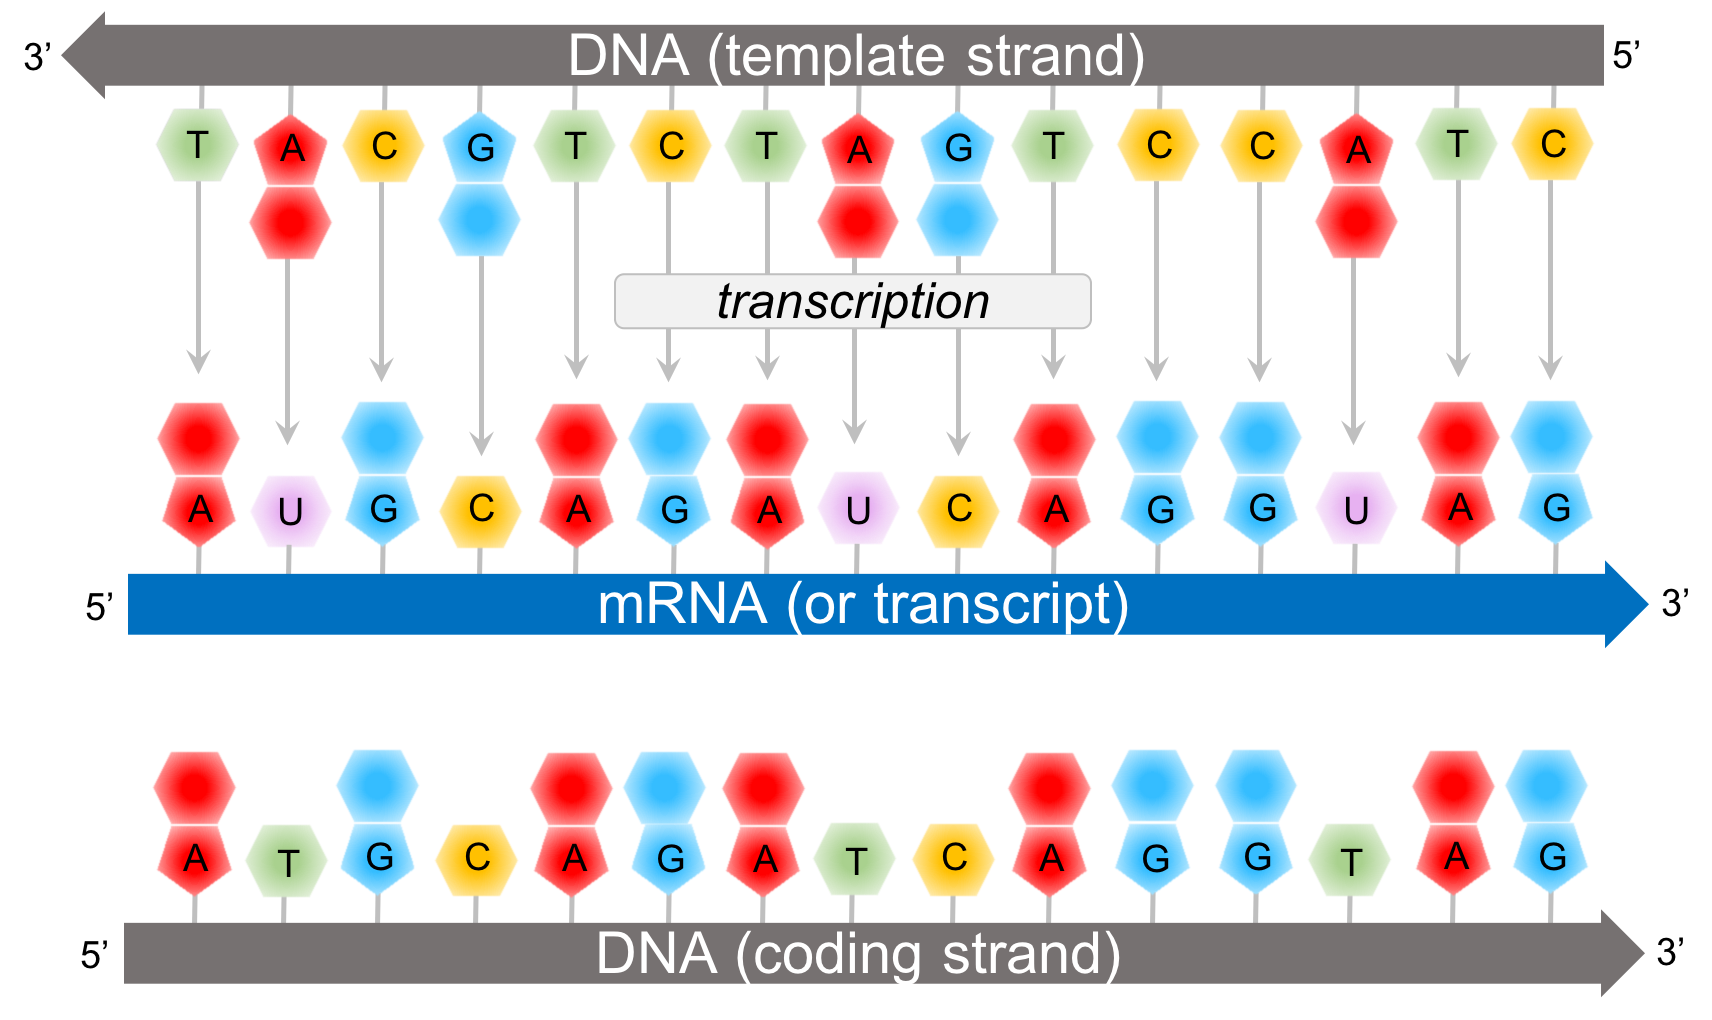 Figure 8.  Transcription creates a transcript, or mRNA, according to complementary base pairing of the template strand of DNA.